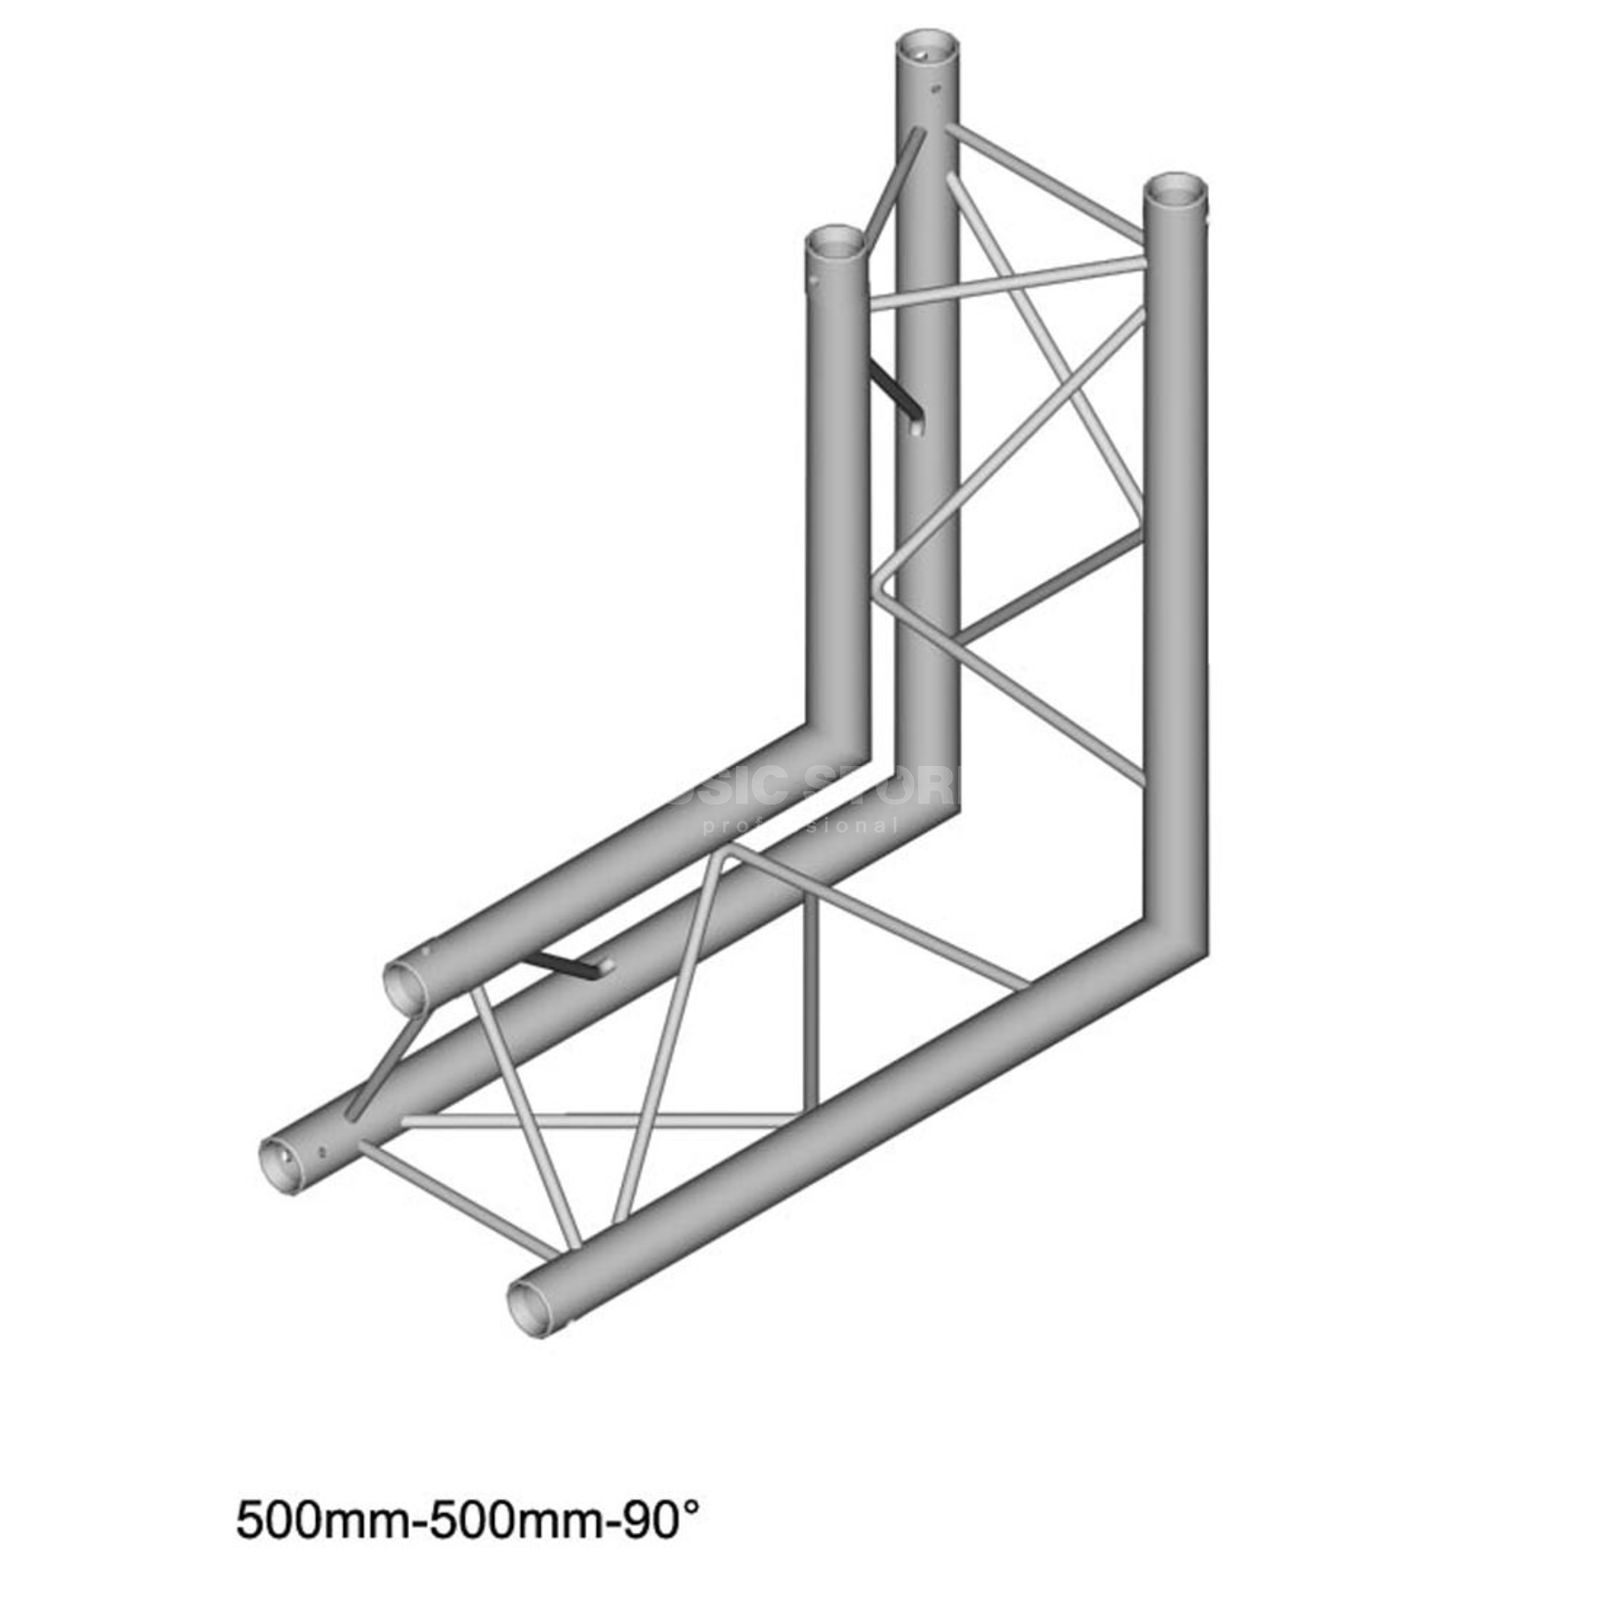 DURATRUSS DT 23 C25-L90, 3-Point Truss 90° Corner, 2-Way, Tip inner Produktbillede